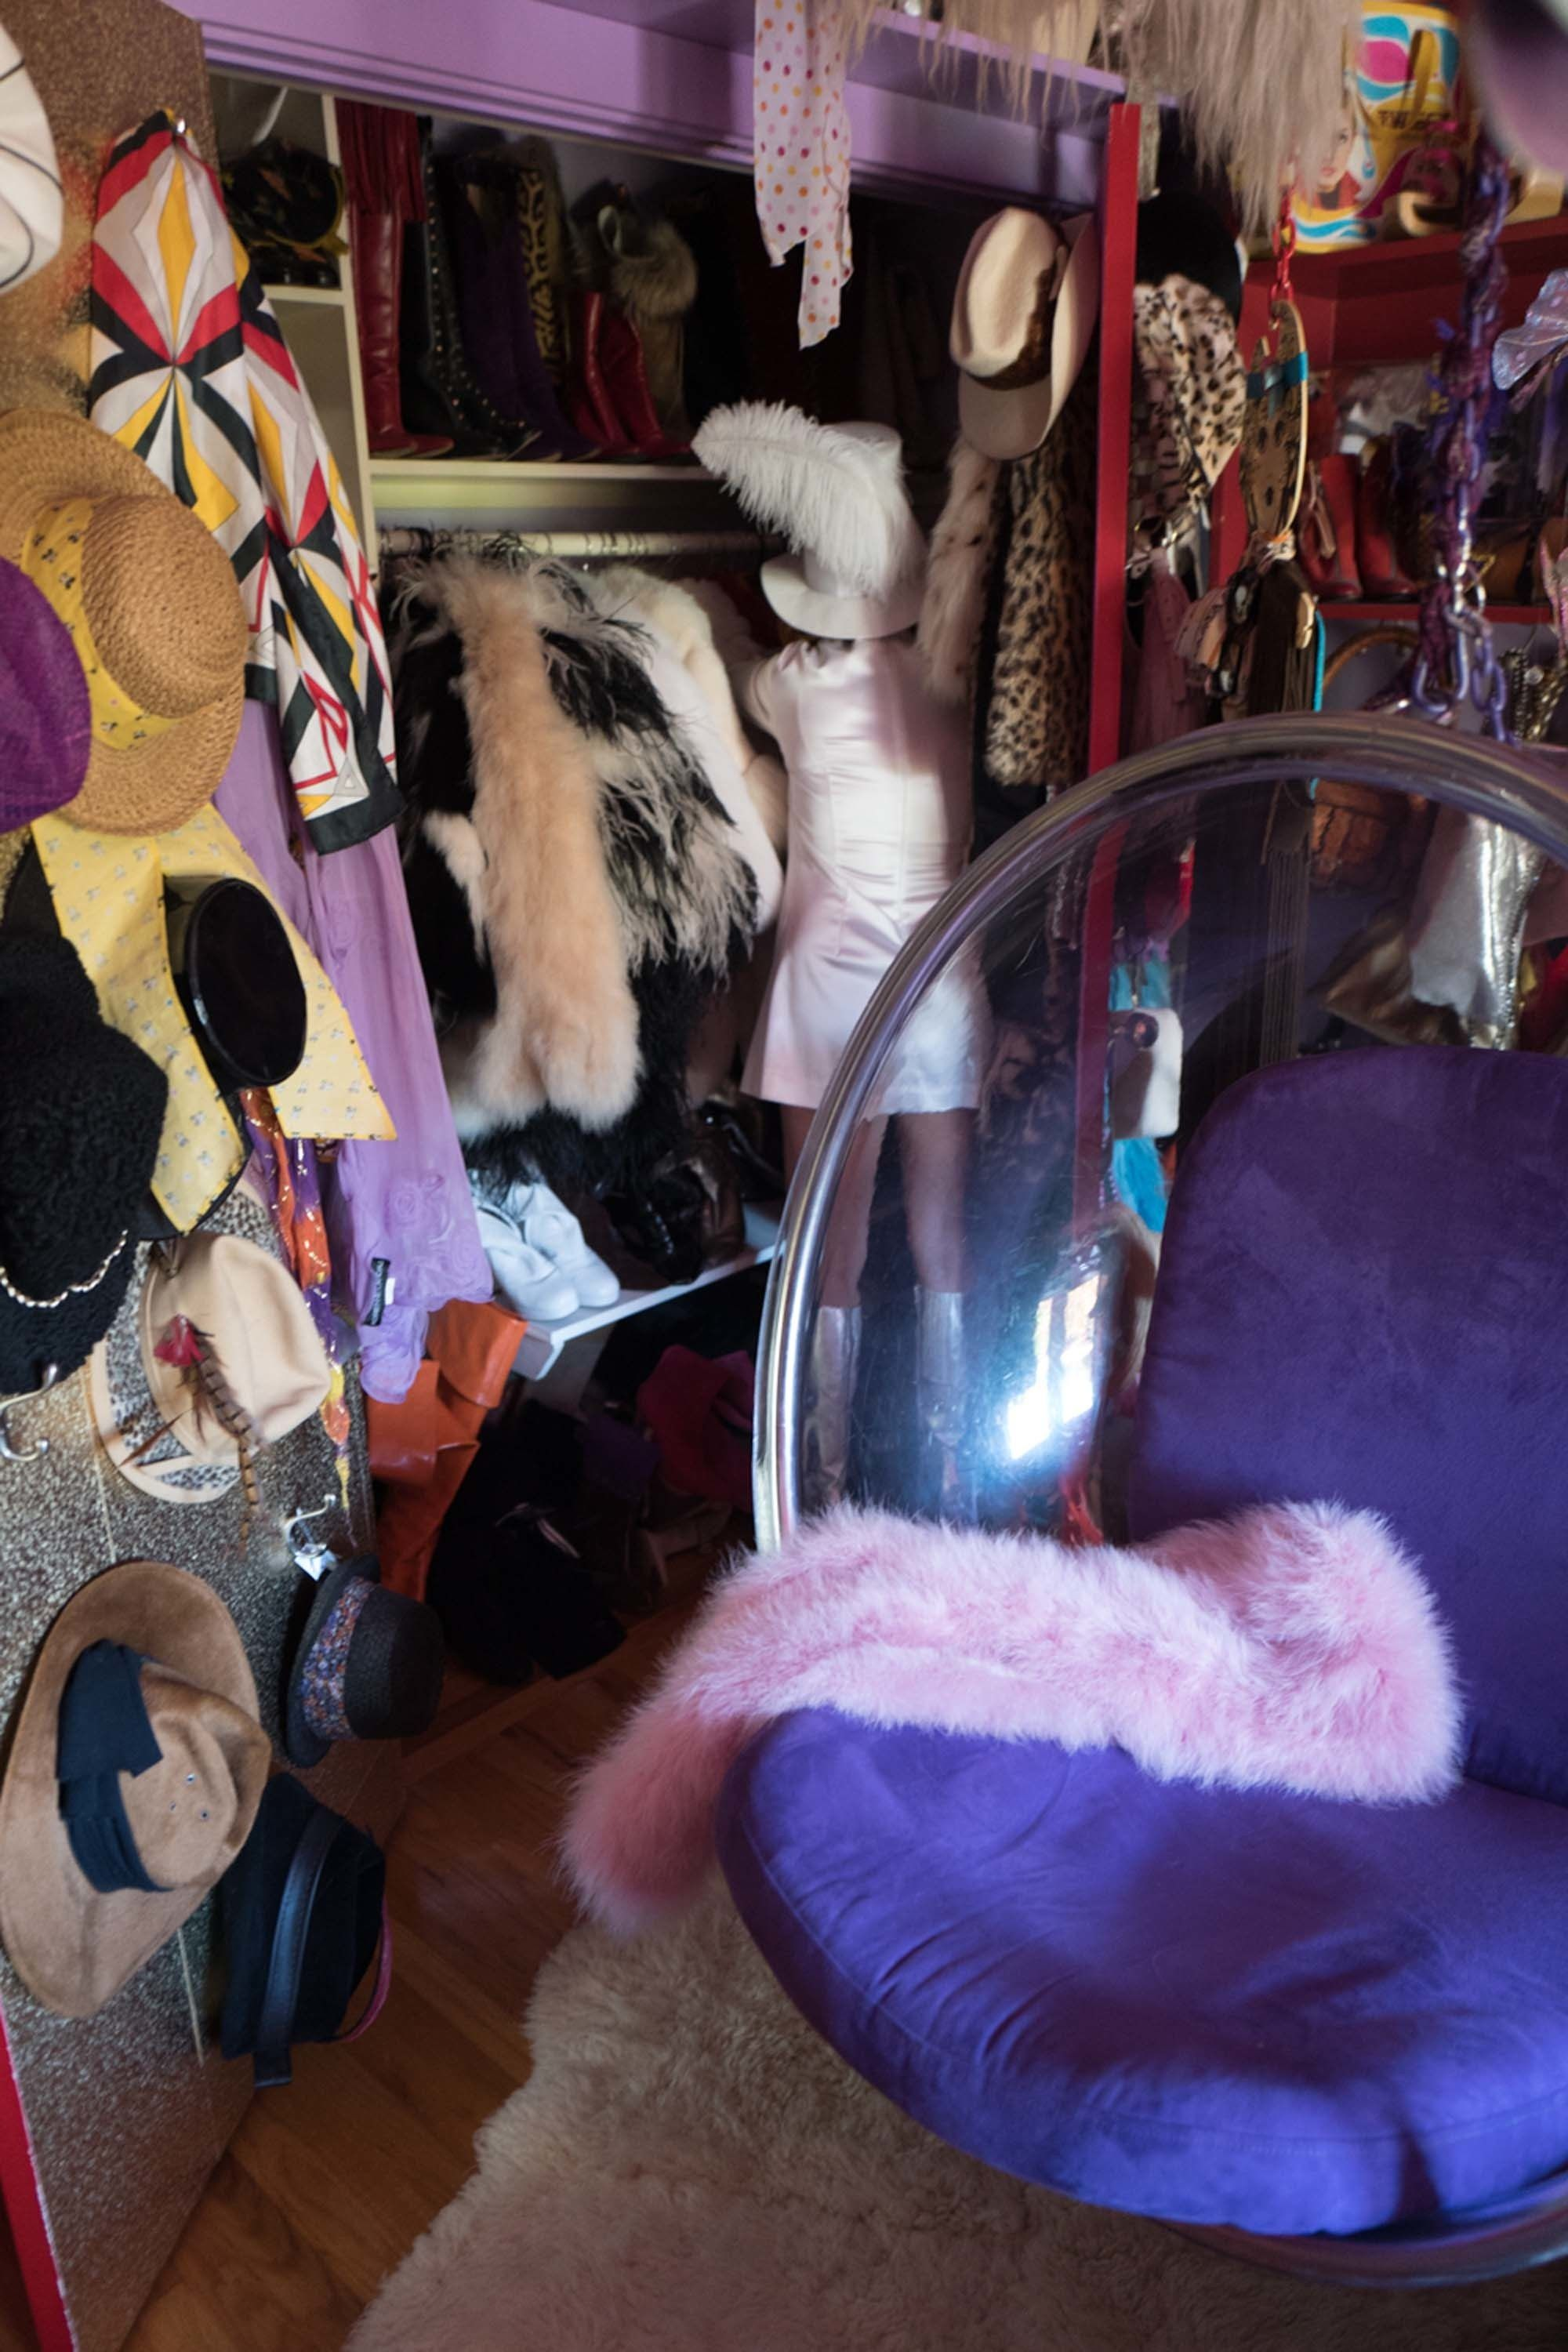 Linda Ramone Gives Us a Tour of Her Jaw-Dropping Closet - Photos